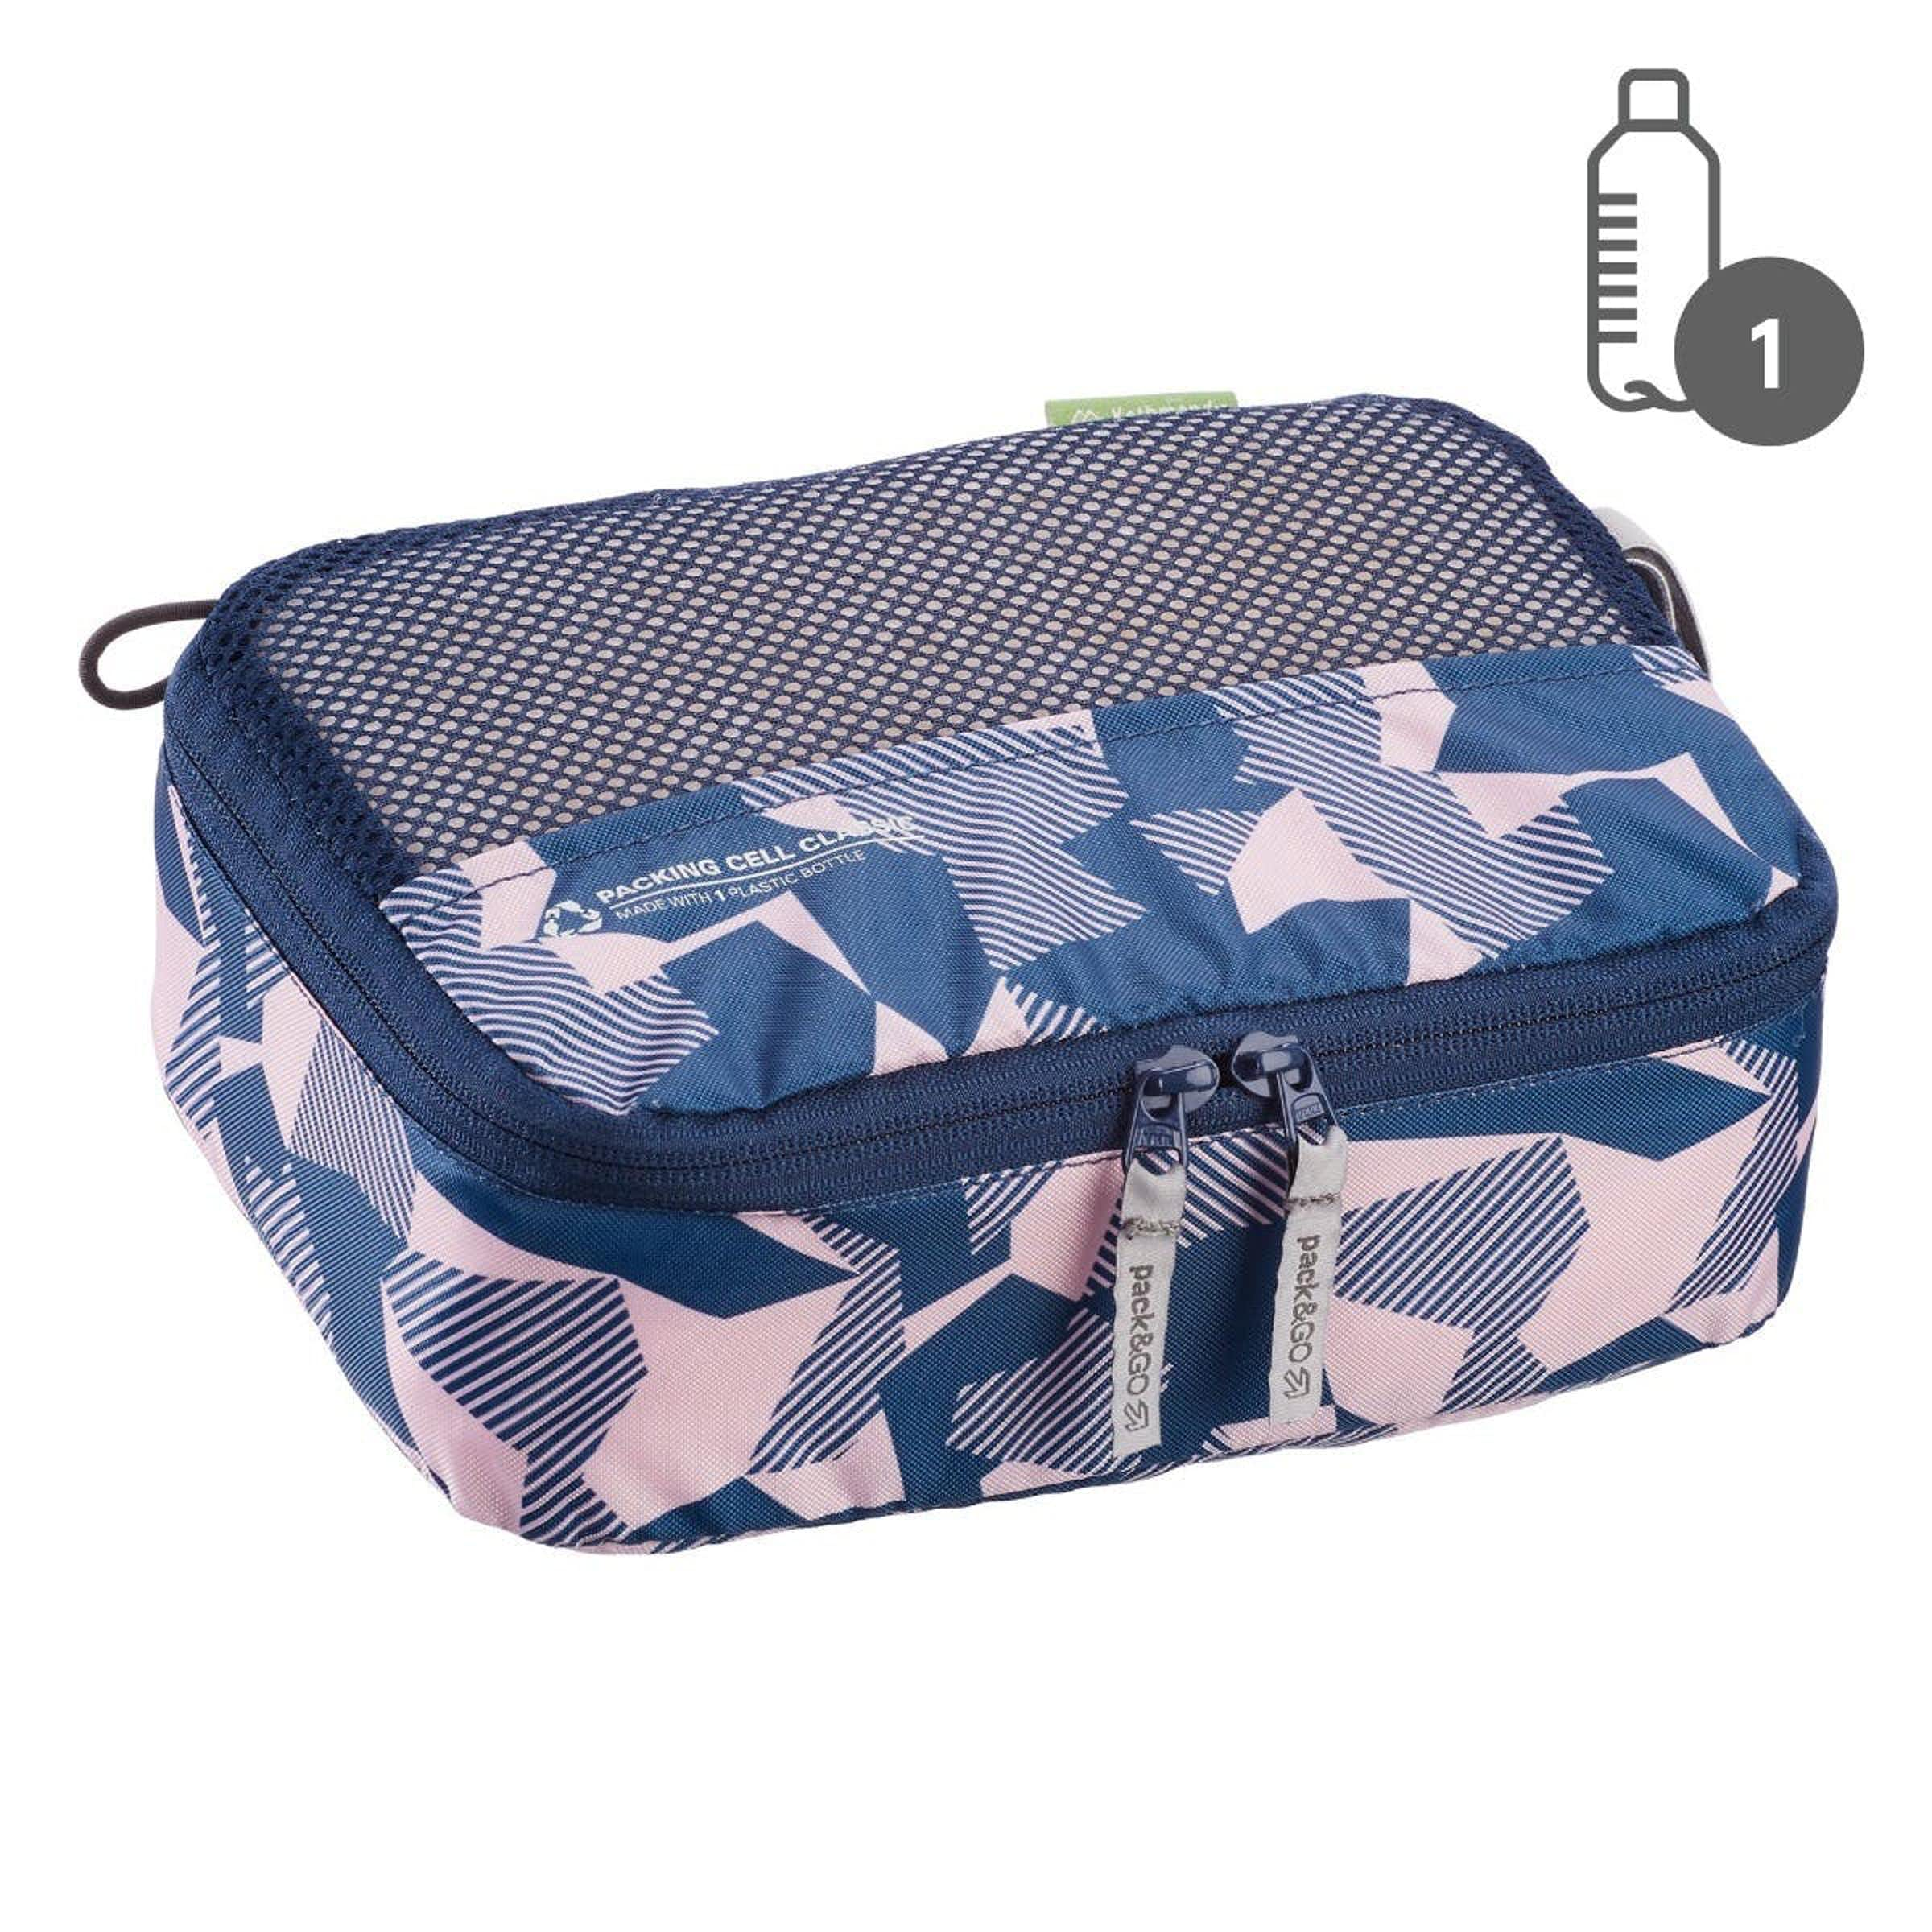 97f115233568 Extra Small Packing Cell Classic